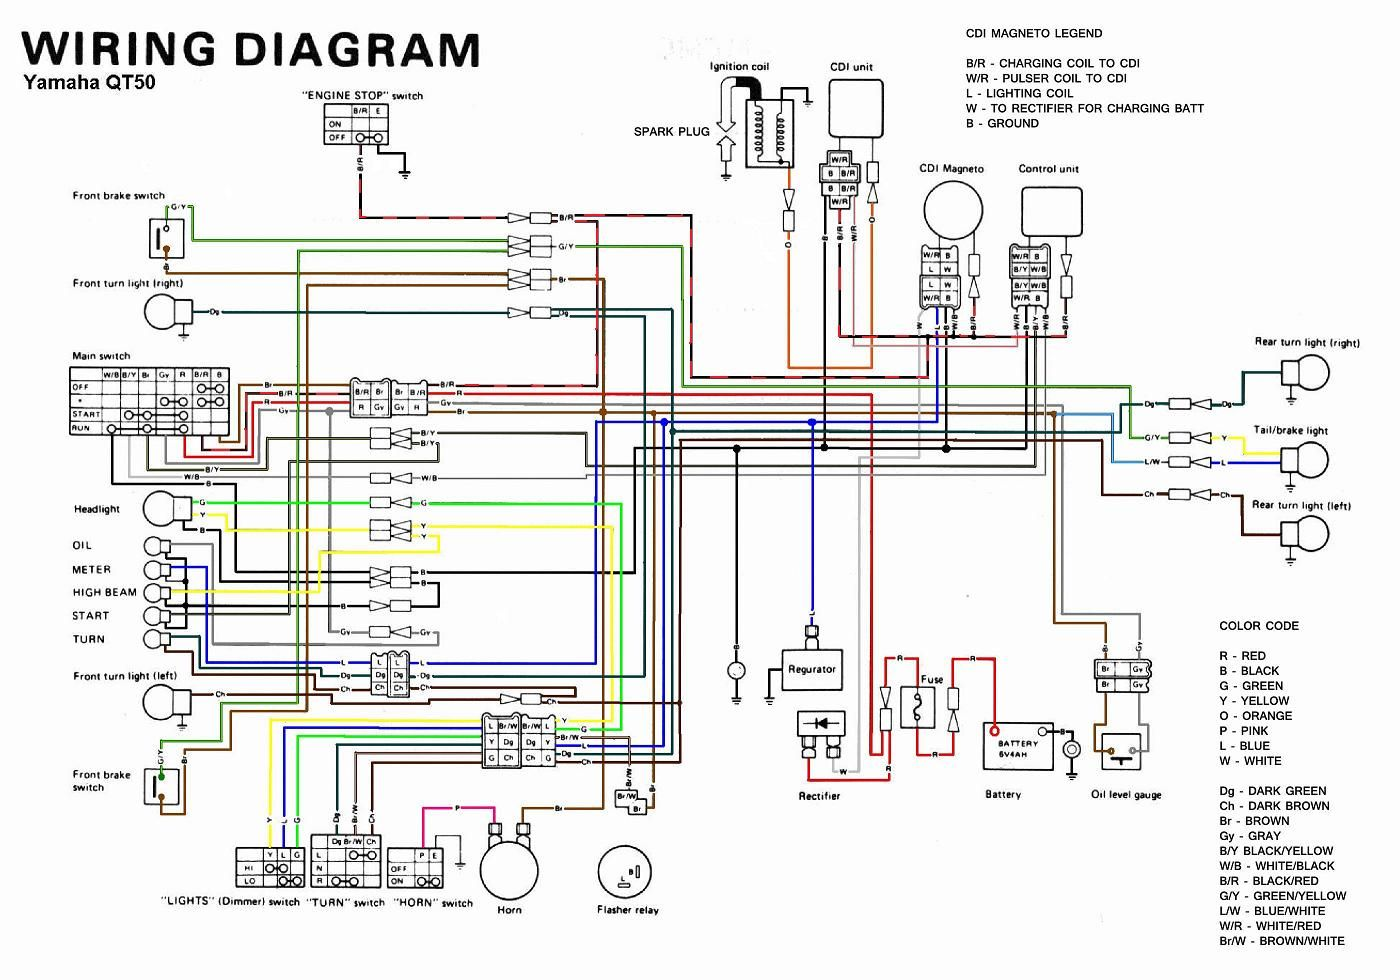 small resolution of image result for 1989 yamaha zuma wiring diagram 1989 yamaha zuma yamaha schematics image result for